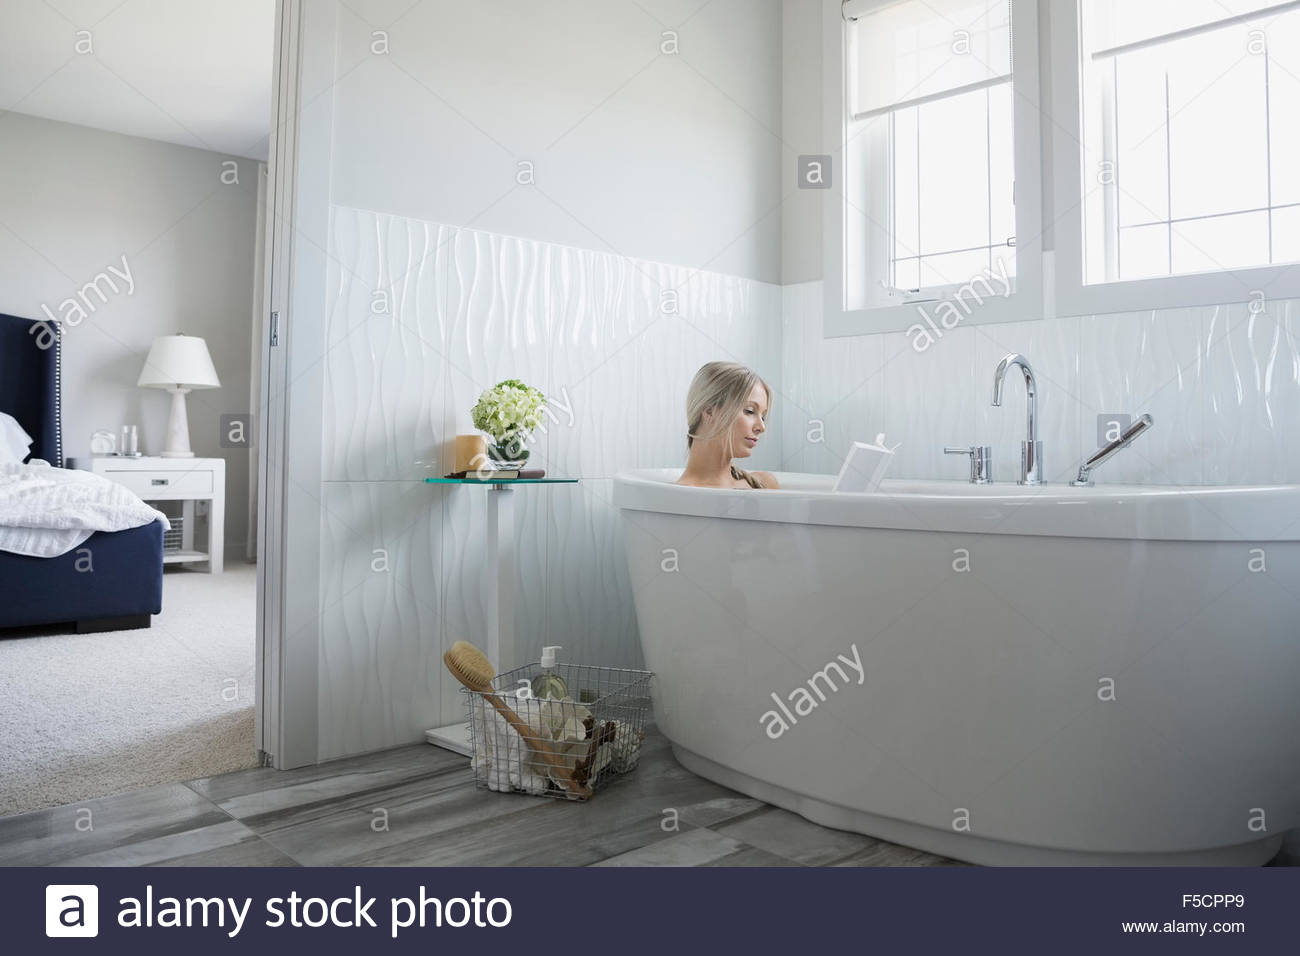 relaxation stockfotos relaxation bilder alamy. Black Bedroom Furniture Sets. Home Design Ideas